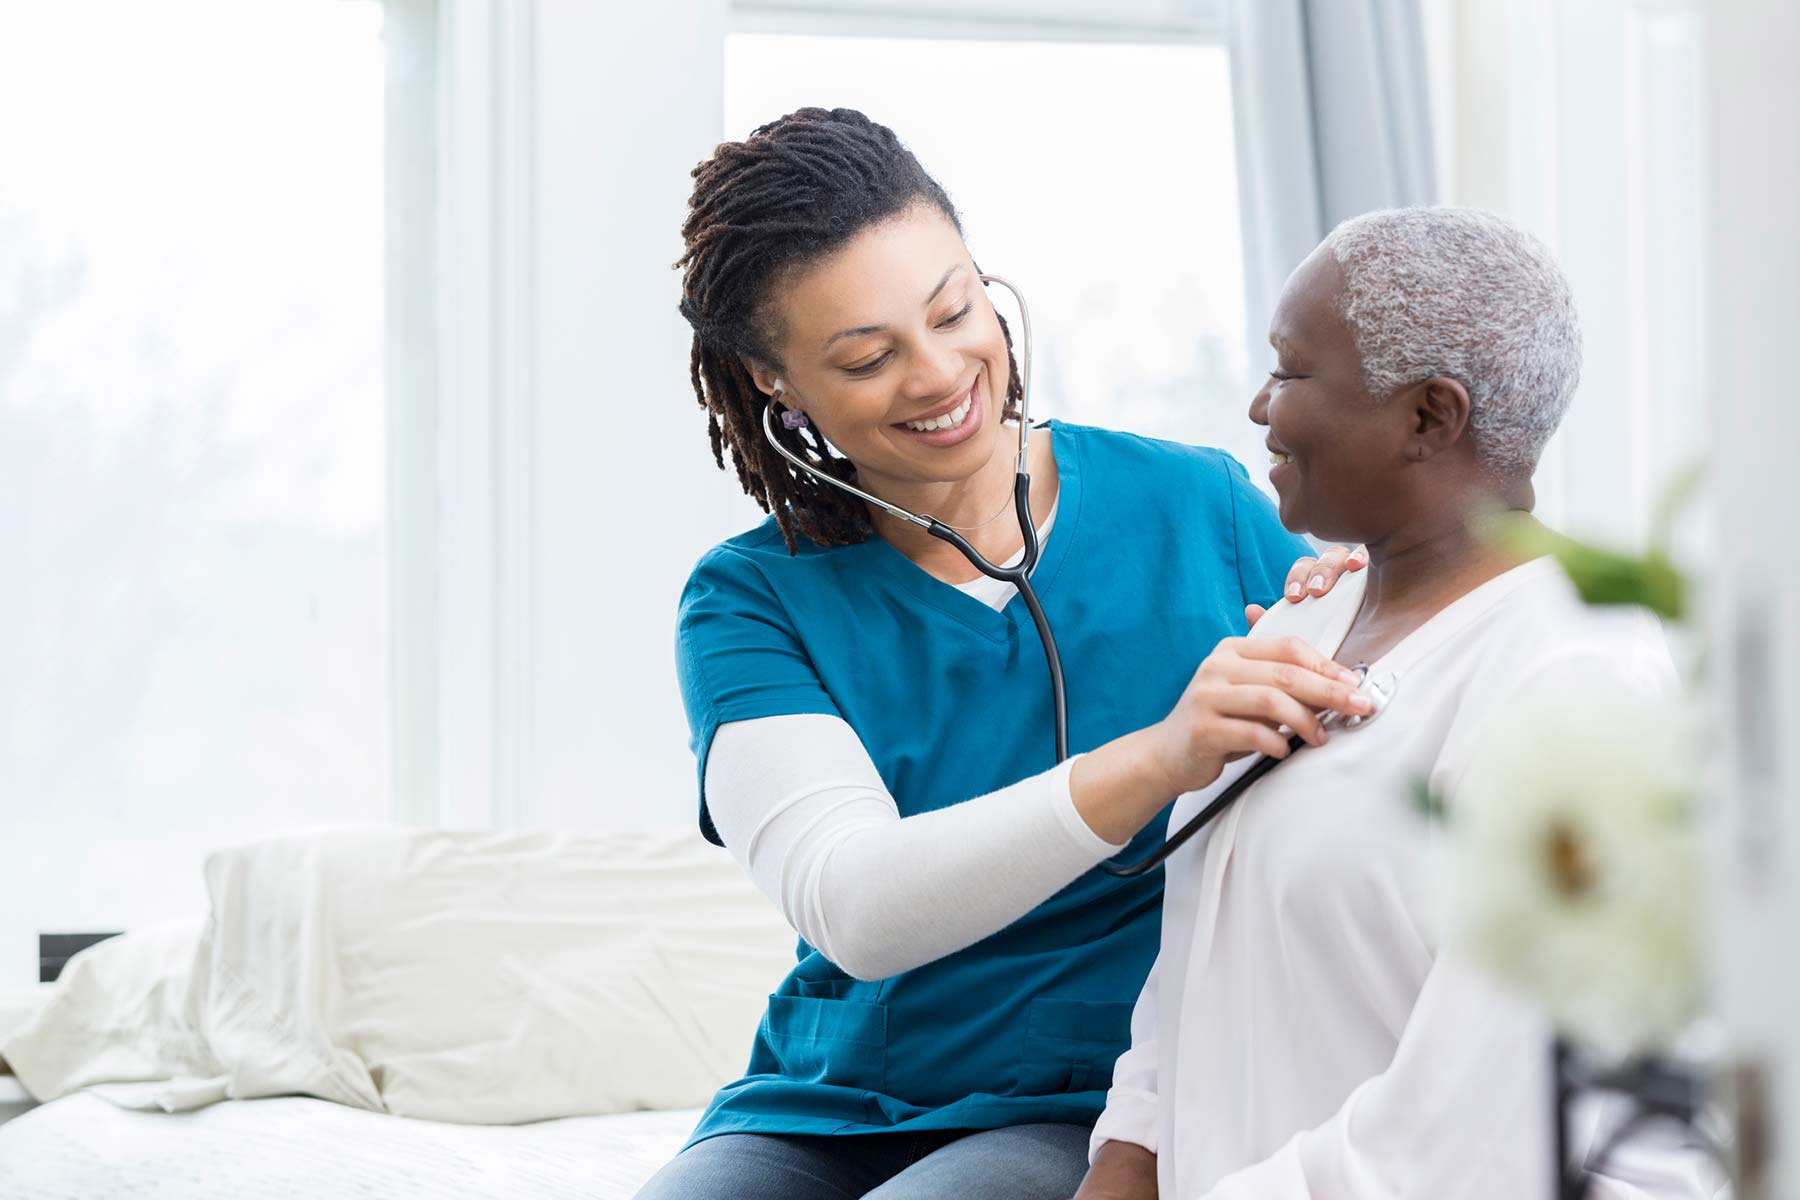 Home Care - provider checking patient with stethoscope